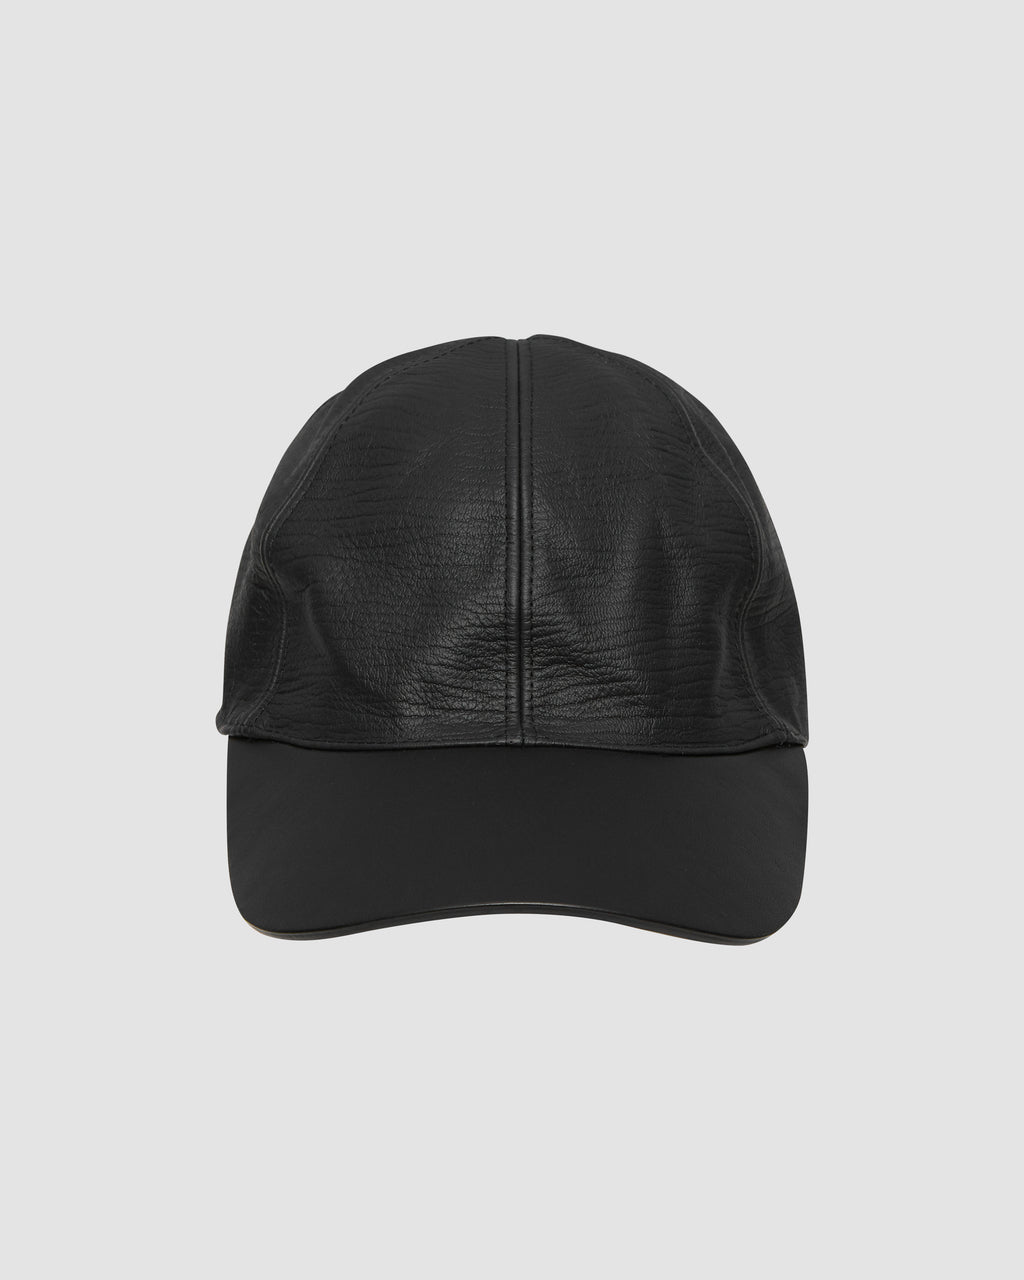 CLASSIC HAT IN LEATHER W BUCKLE